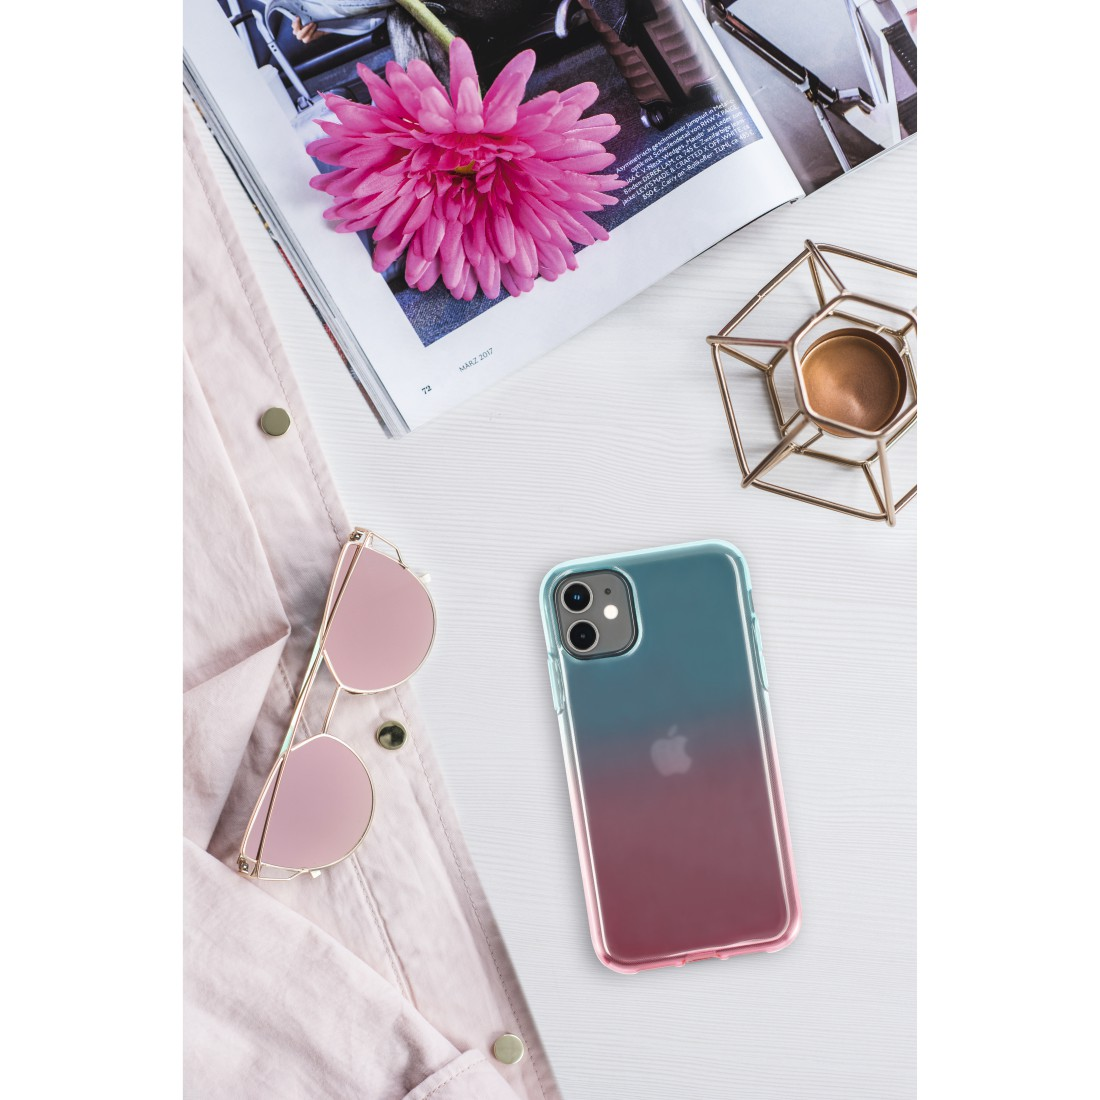 "awx High-Res Appliance - Hama, Coque de protection ""Shade"" pr Apple iPhone 6/6s/7/SE 2020, bleue/rose"